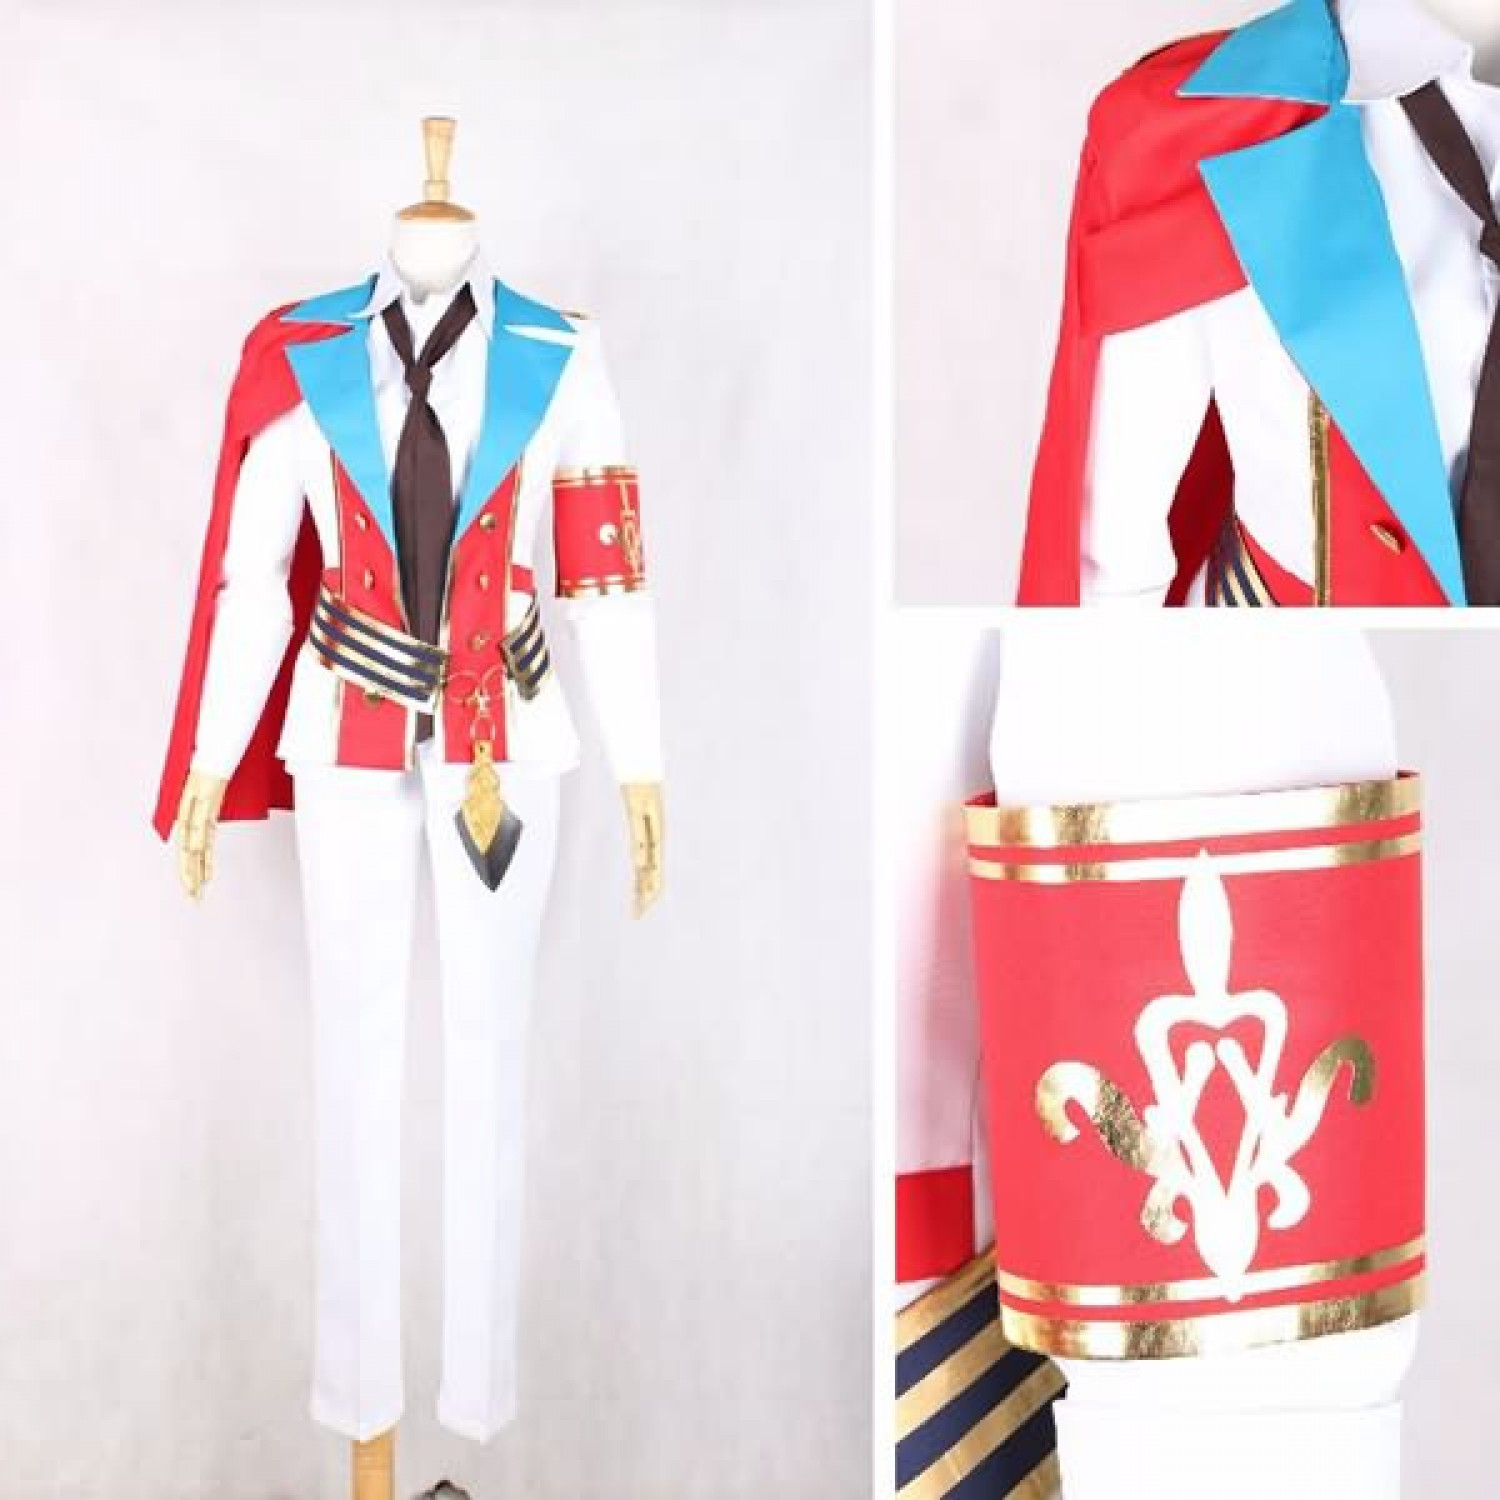 100 Sleeping Princes The Kingdom of Dreams Avi Moon Mode Cosplay Costume